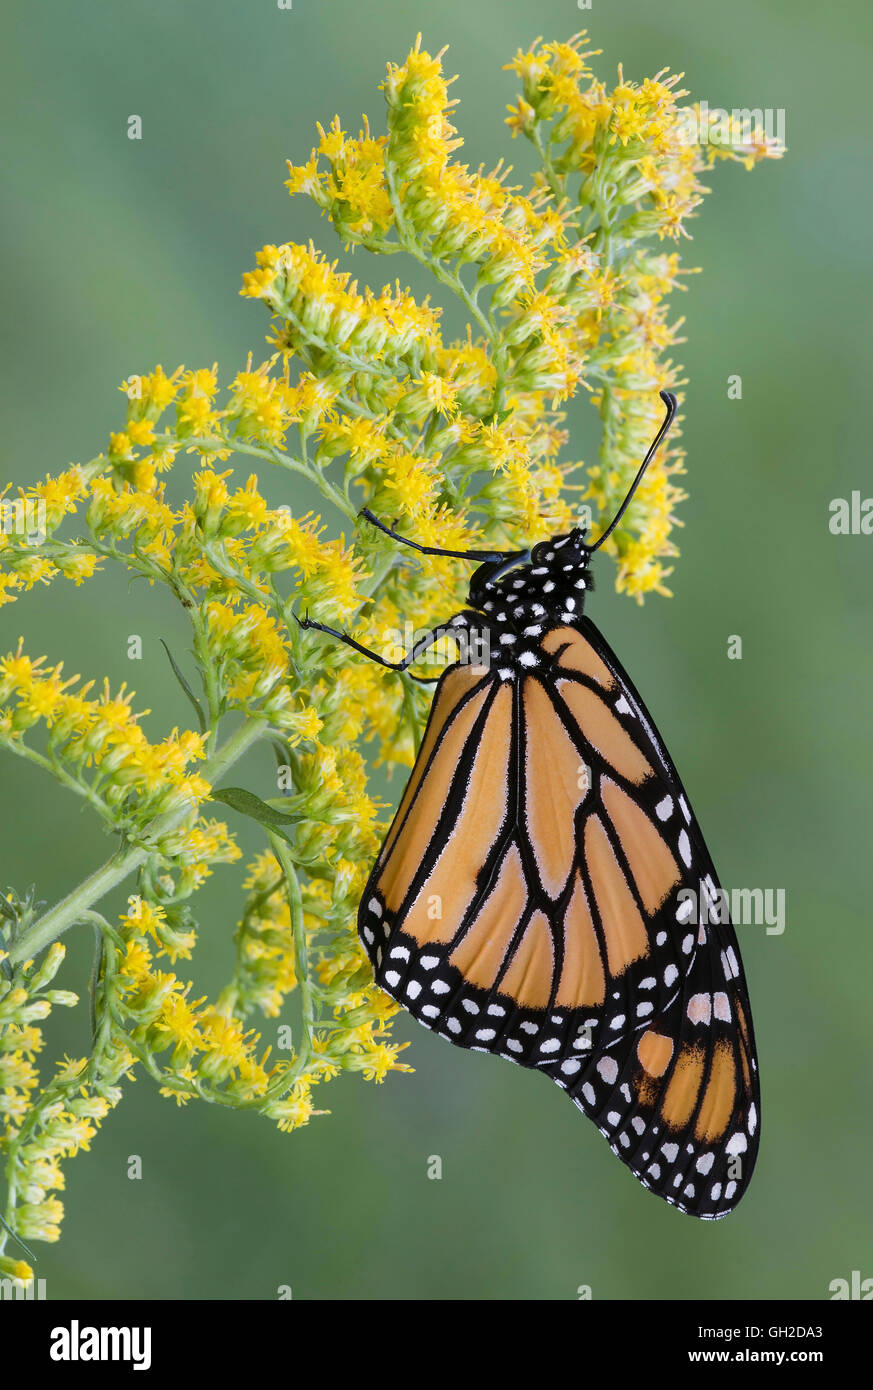 Monarch Butterfly (Danaus plexippus) on Goldenrod (Solidago sps), late Summer, early Fall, E USA, by Skip Moody/Dembinsky Stock Photo